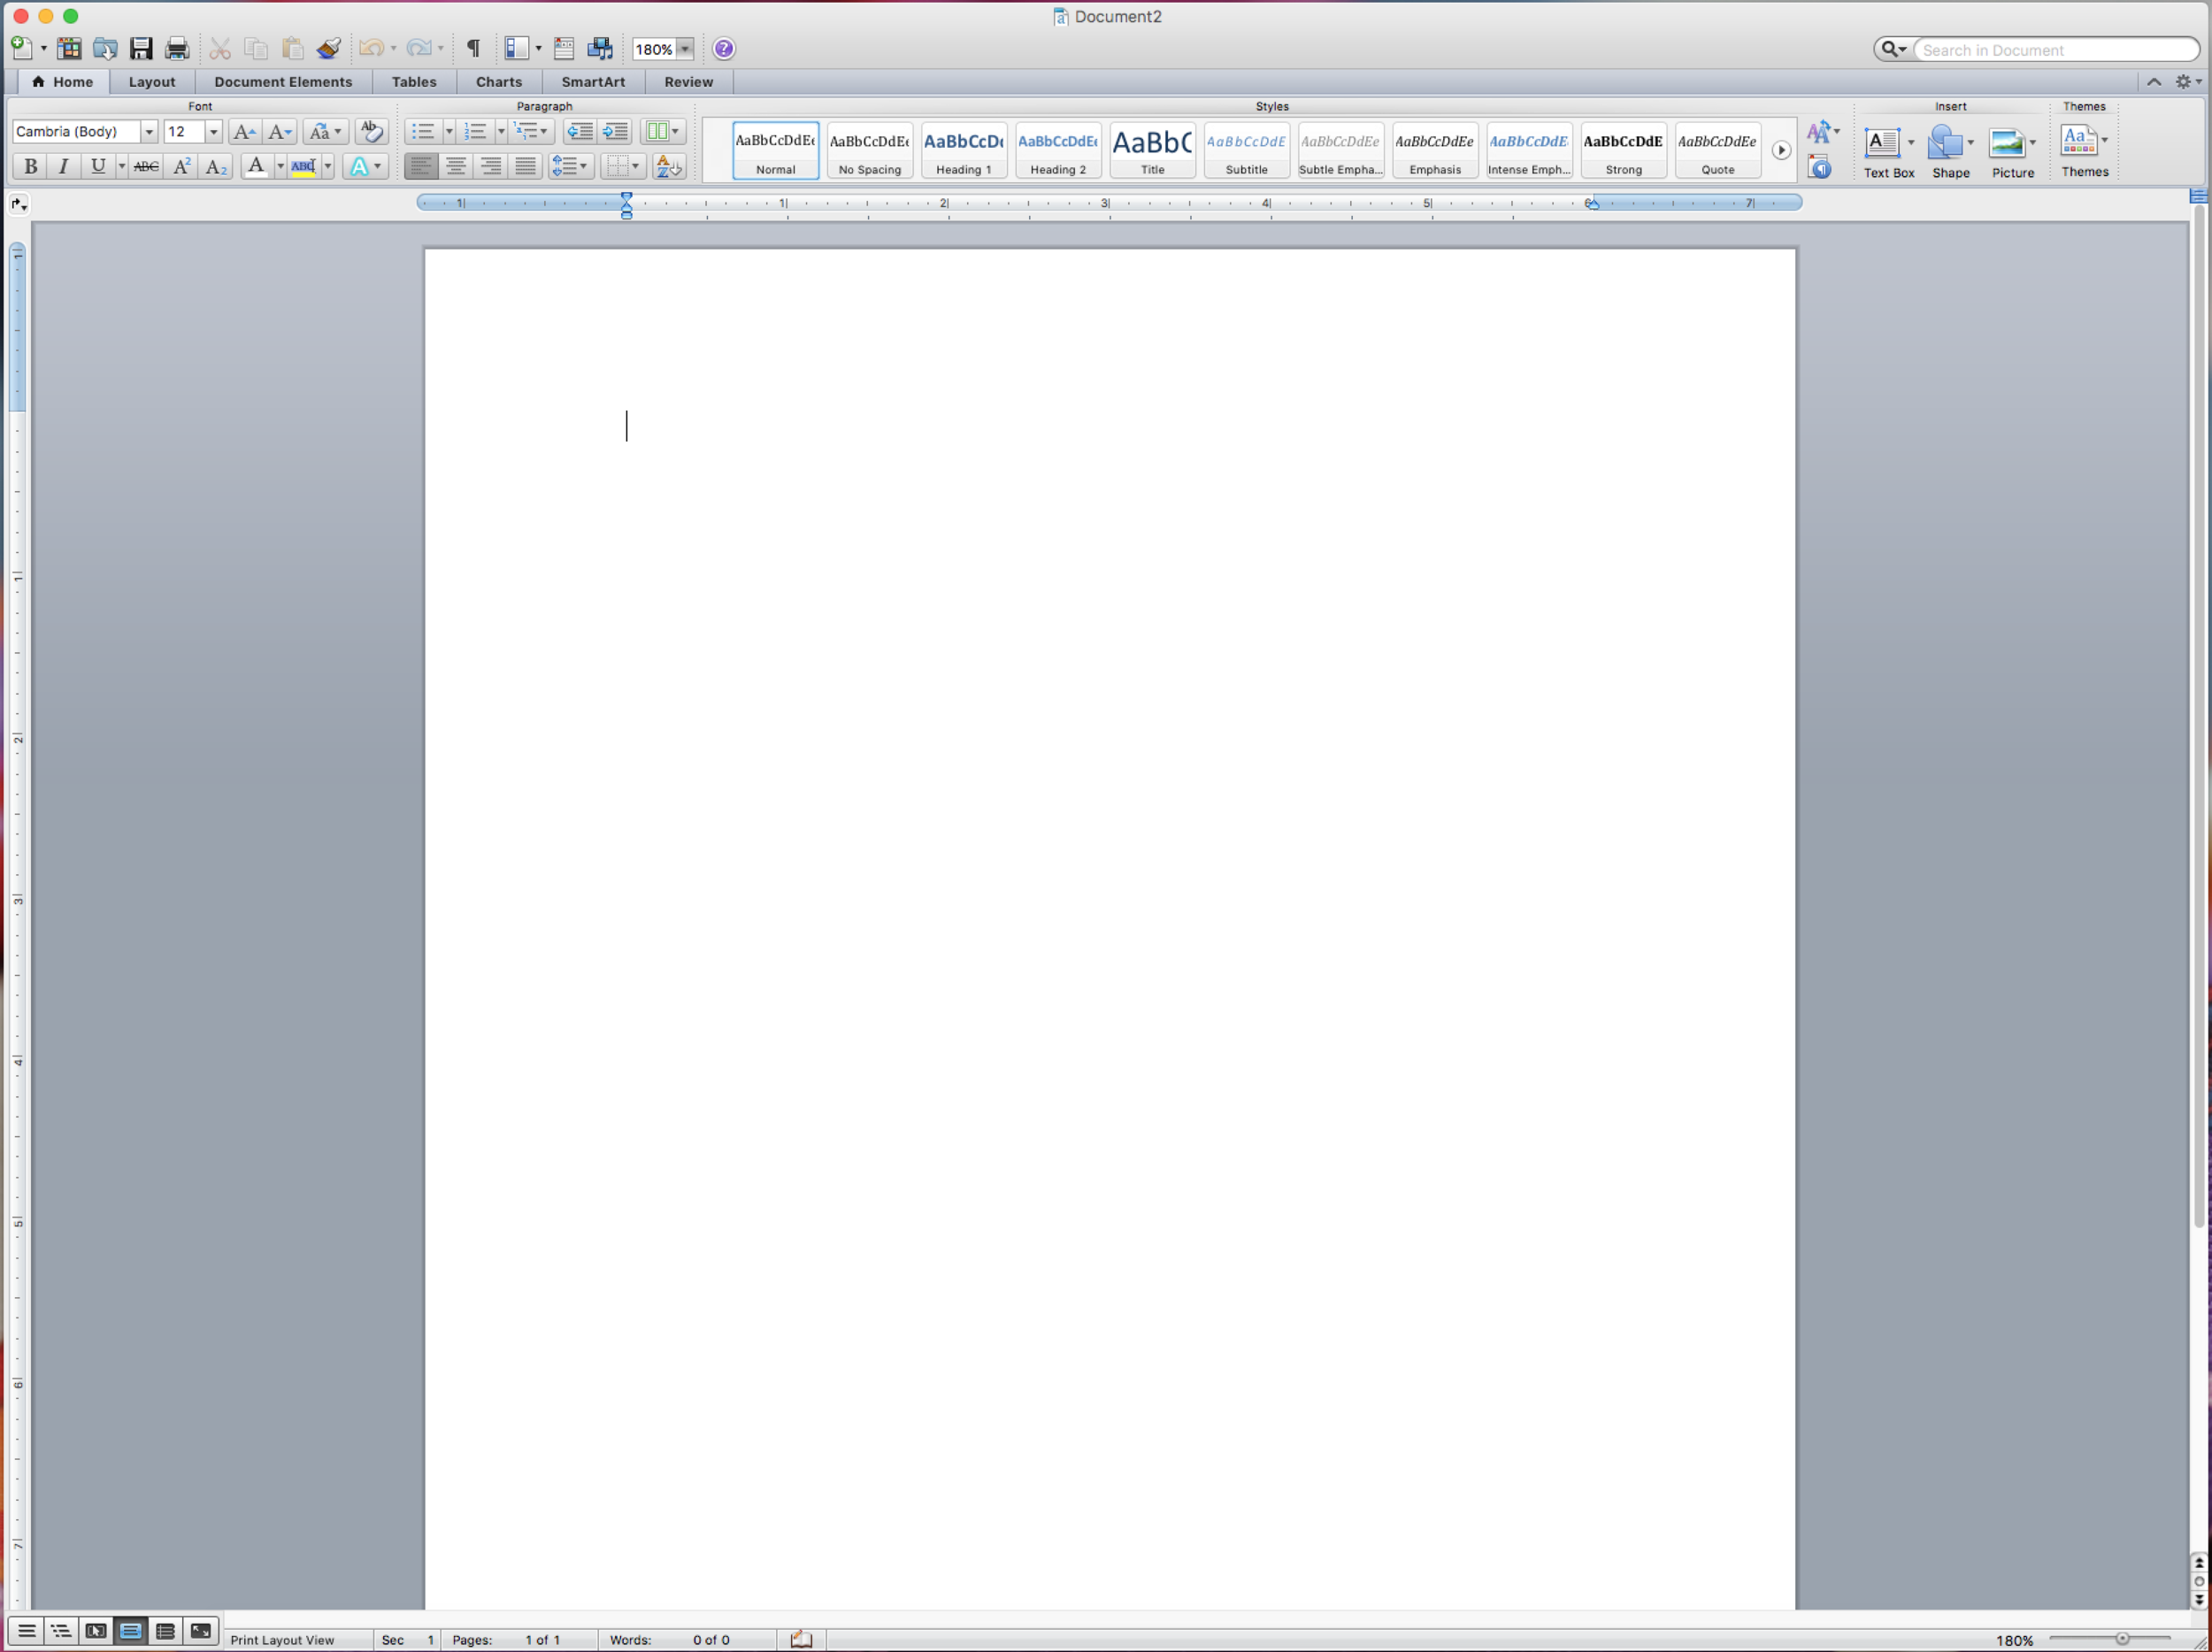 Woohoo...A blank sheet of paper!